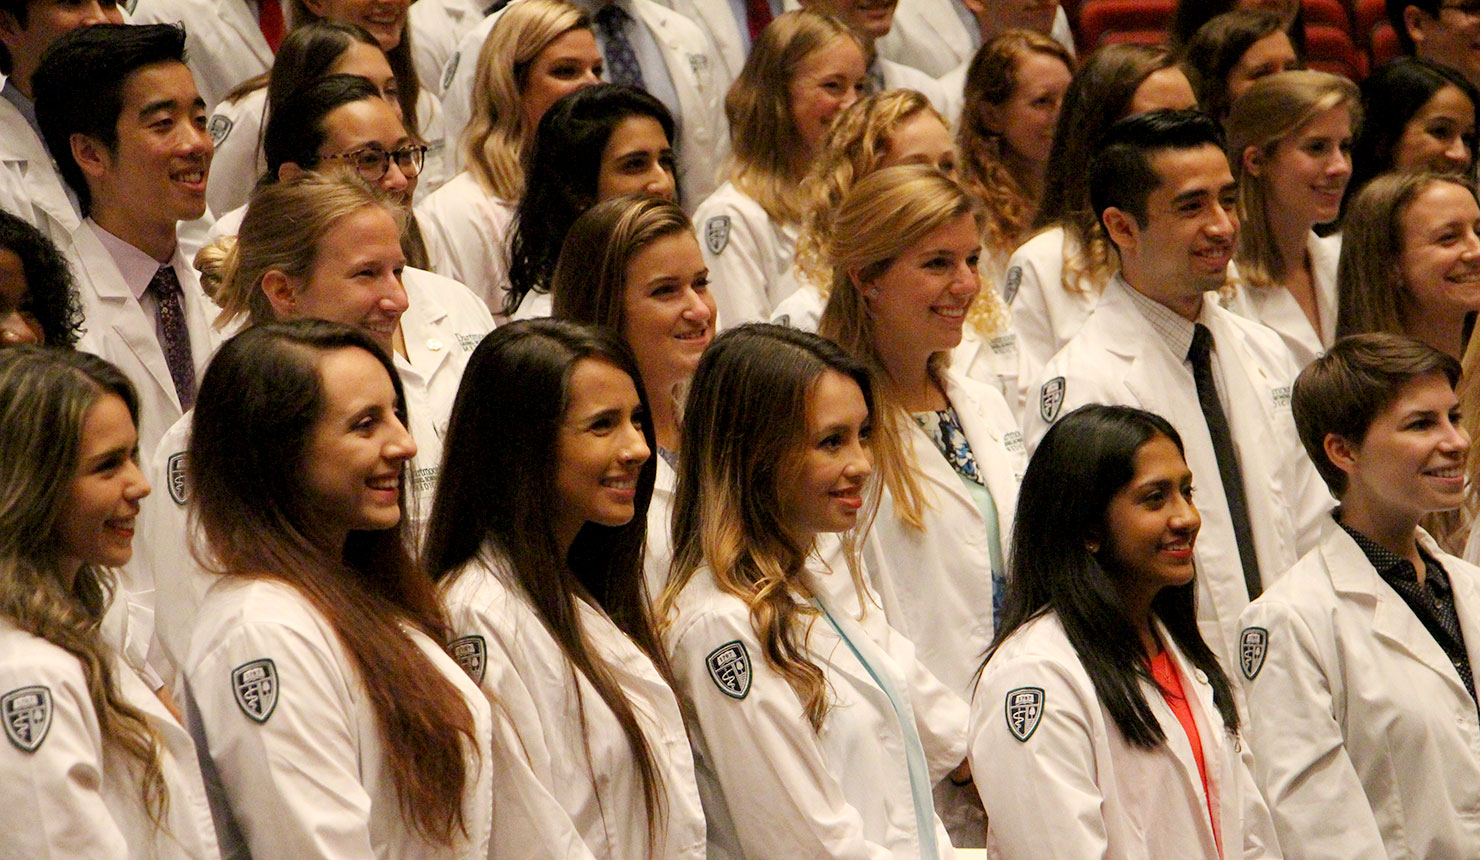 First-Year Medical Students Don Their White Coats